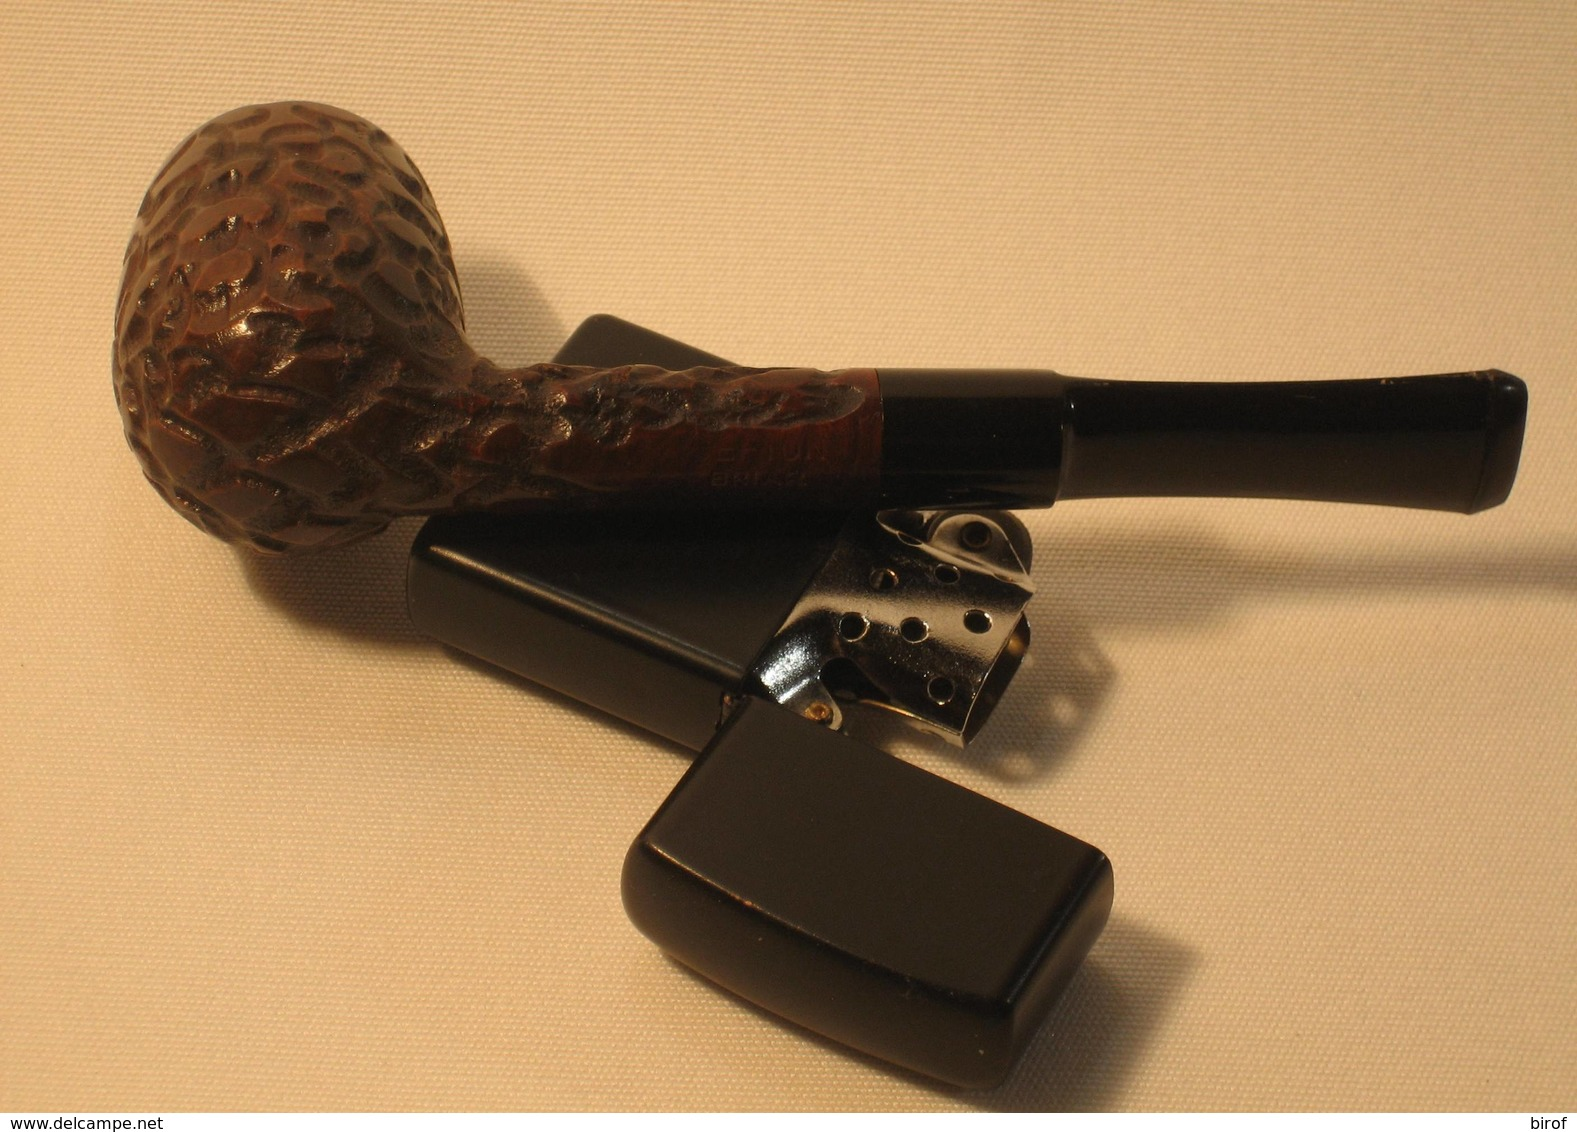 PIPA SEFTON BRIAN FOREIGN - NUOVA - ( N° 2) - Pipe In Bruyère